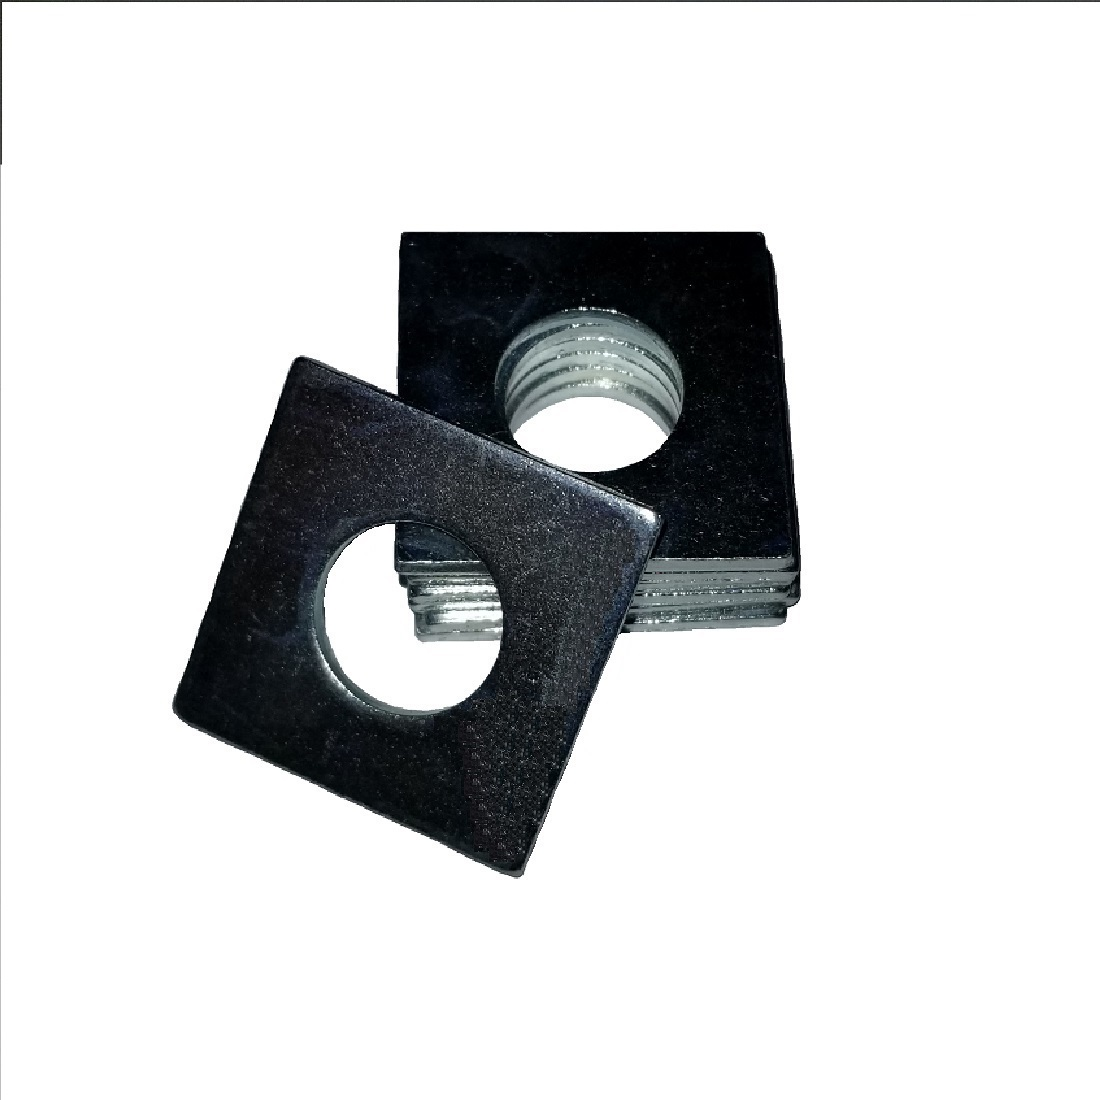 Square OD Washer - 0.145 ID, 0.315 OD, 0.015 Thick, Stainless - 300 Series